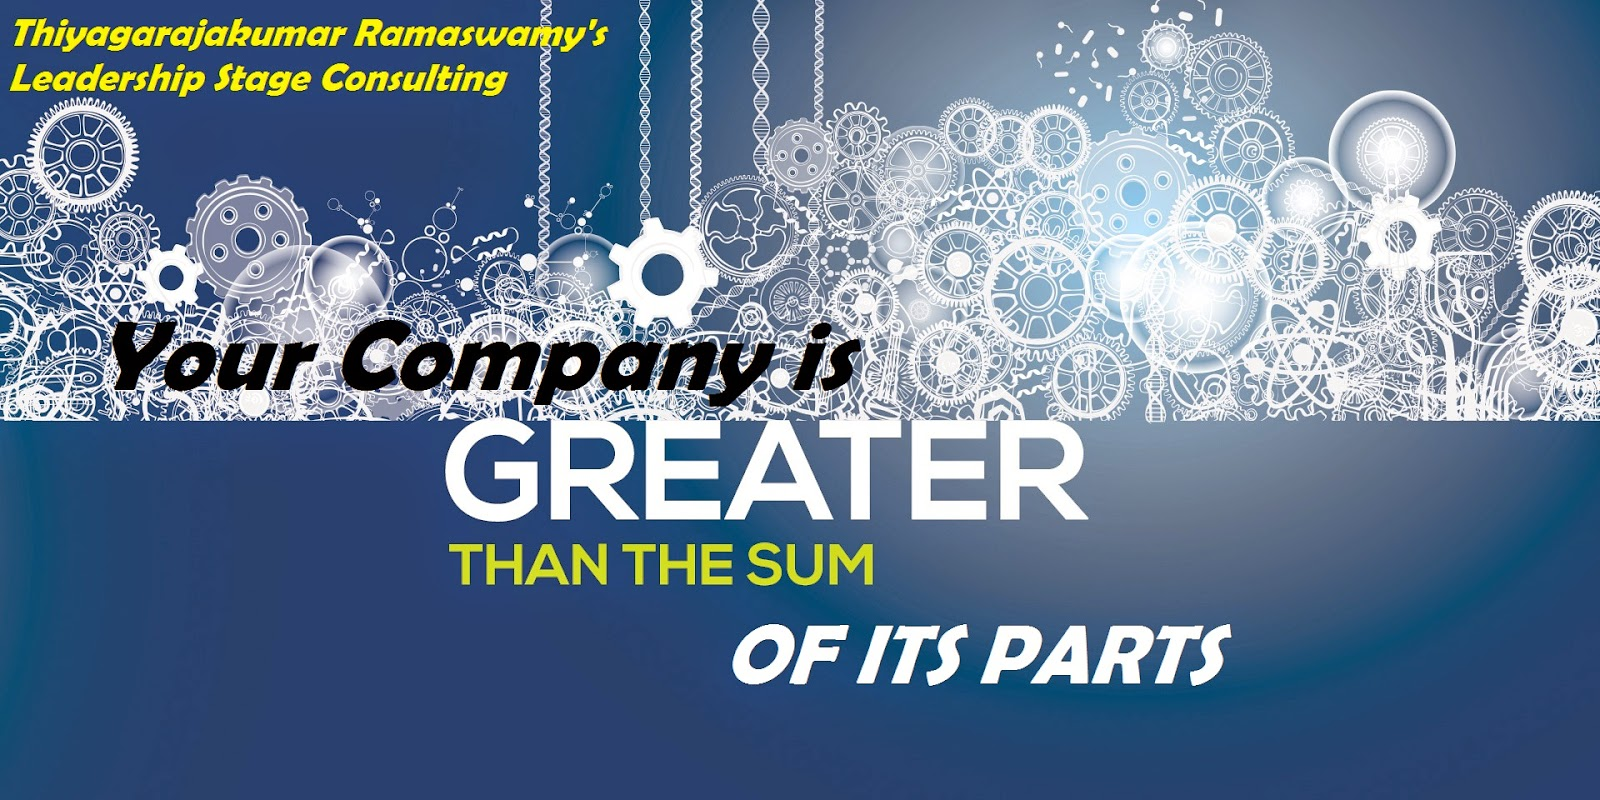 Thiyagarajakumar Ramaswamy Leadership Stage Consulting Your Company is greater than the sum of its parts